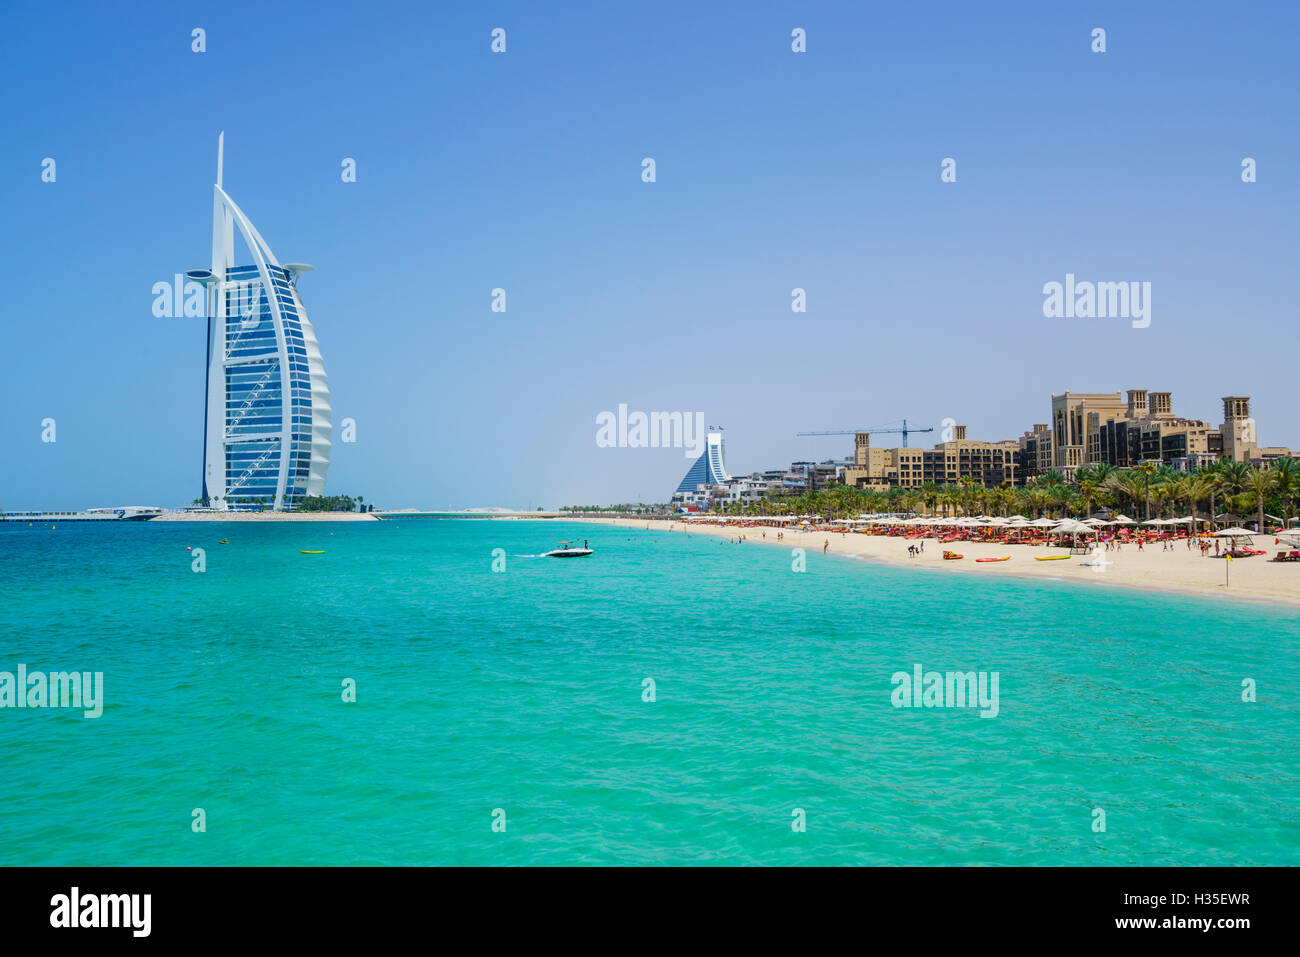 Burj Al Arab hotel, iconic Dubai landmark, Jumeirah Beach, Dubai, United Arab Emirates, Middle East - Stock Image